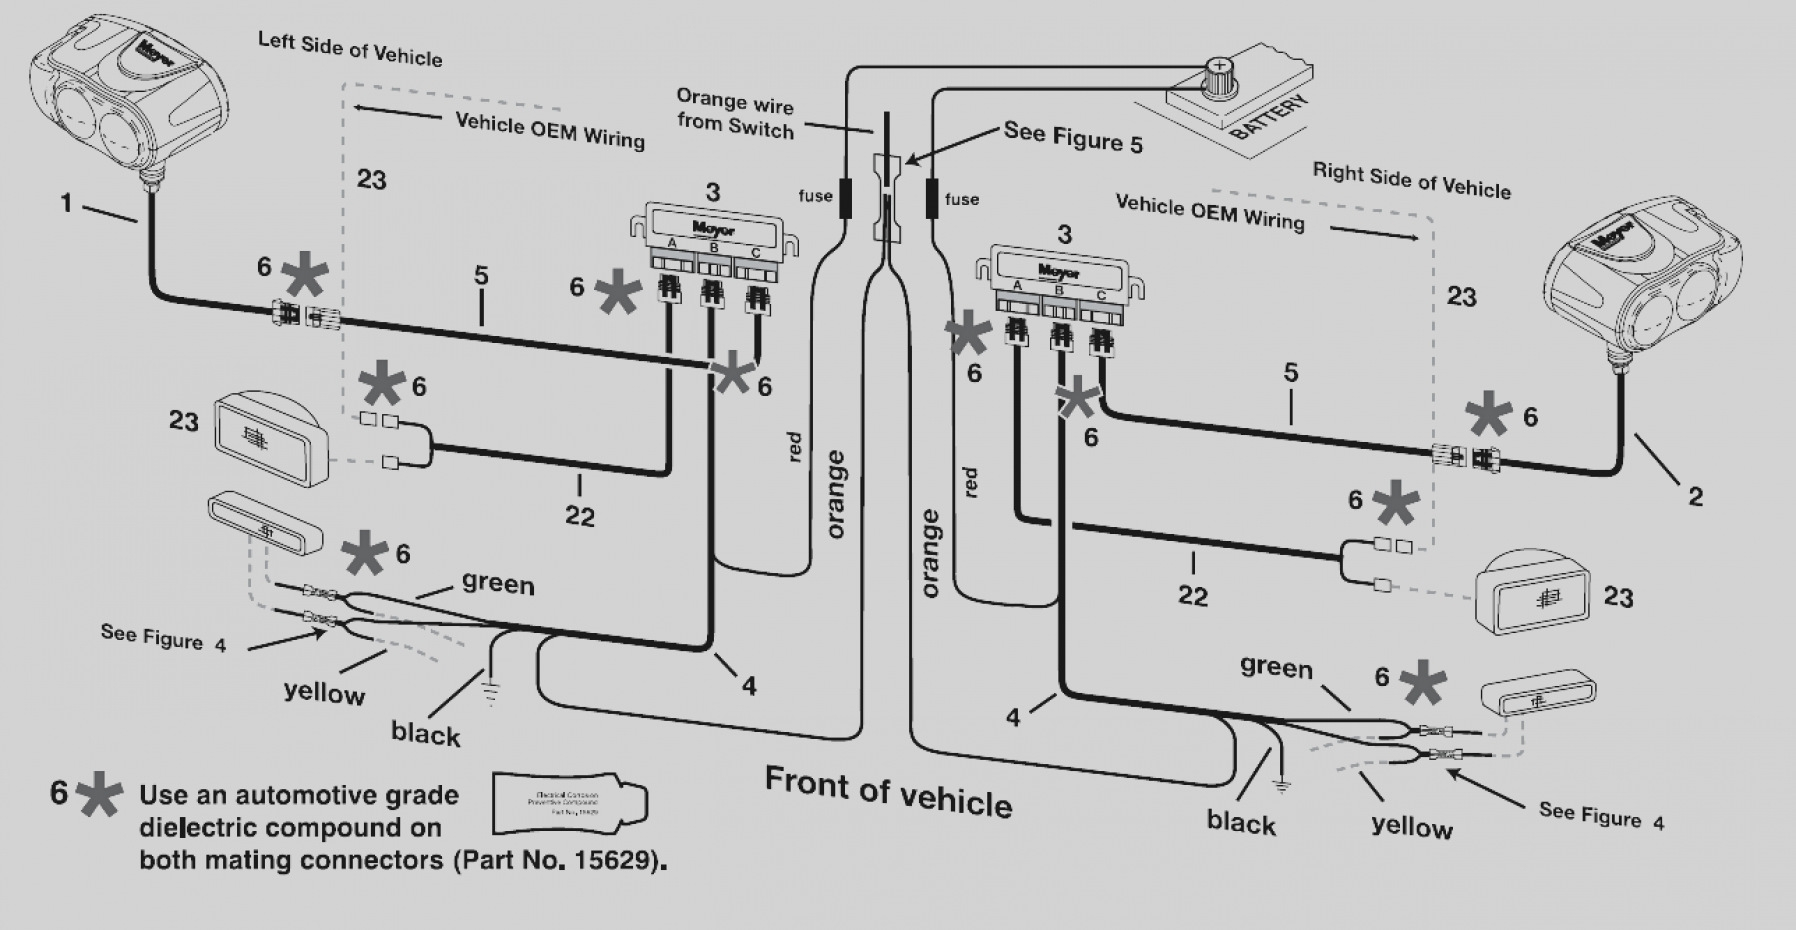 western snow plow solenoid wiring diagram Collection-western snow plow solenoid wiring diagram Download wiring diagram for western plows Awesome Western Plows 17-q